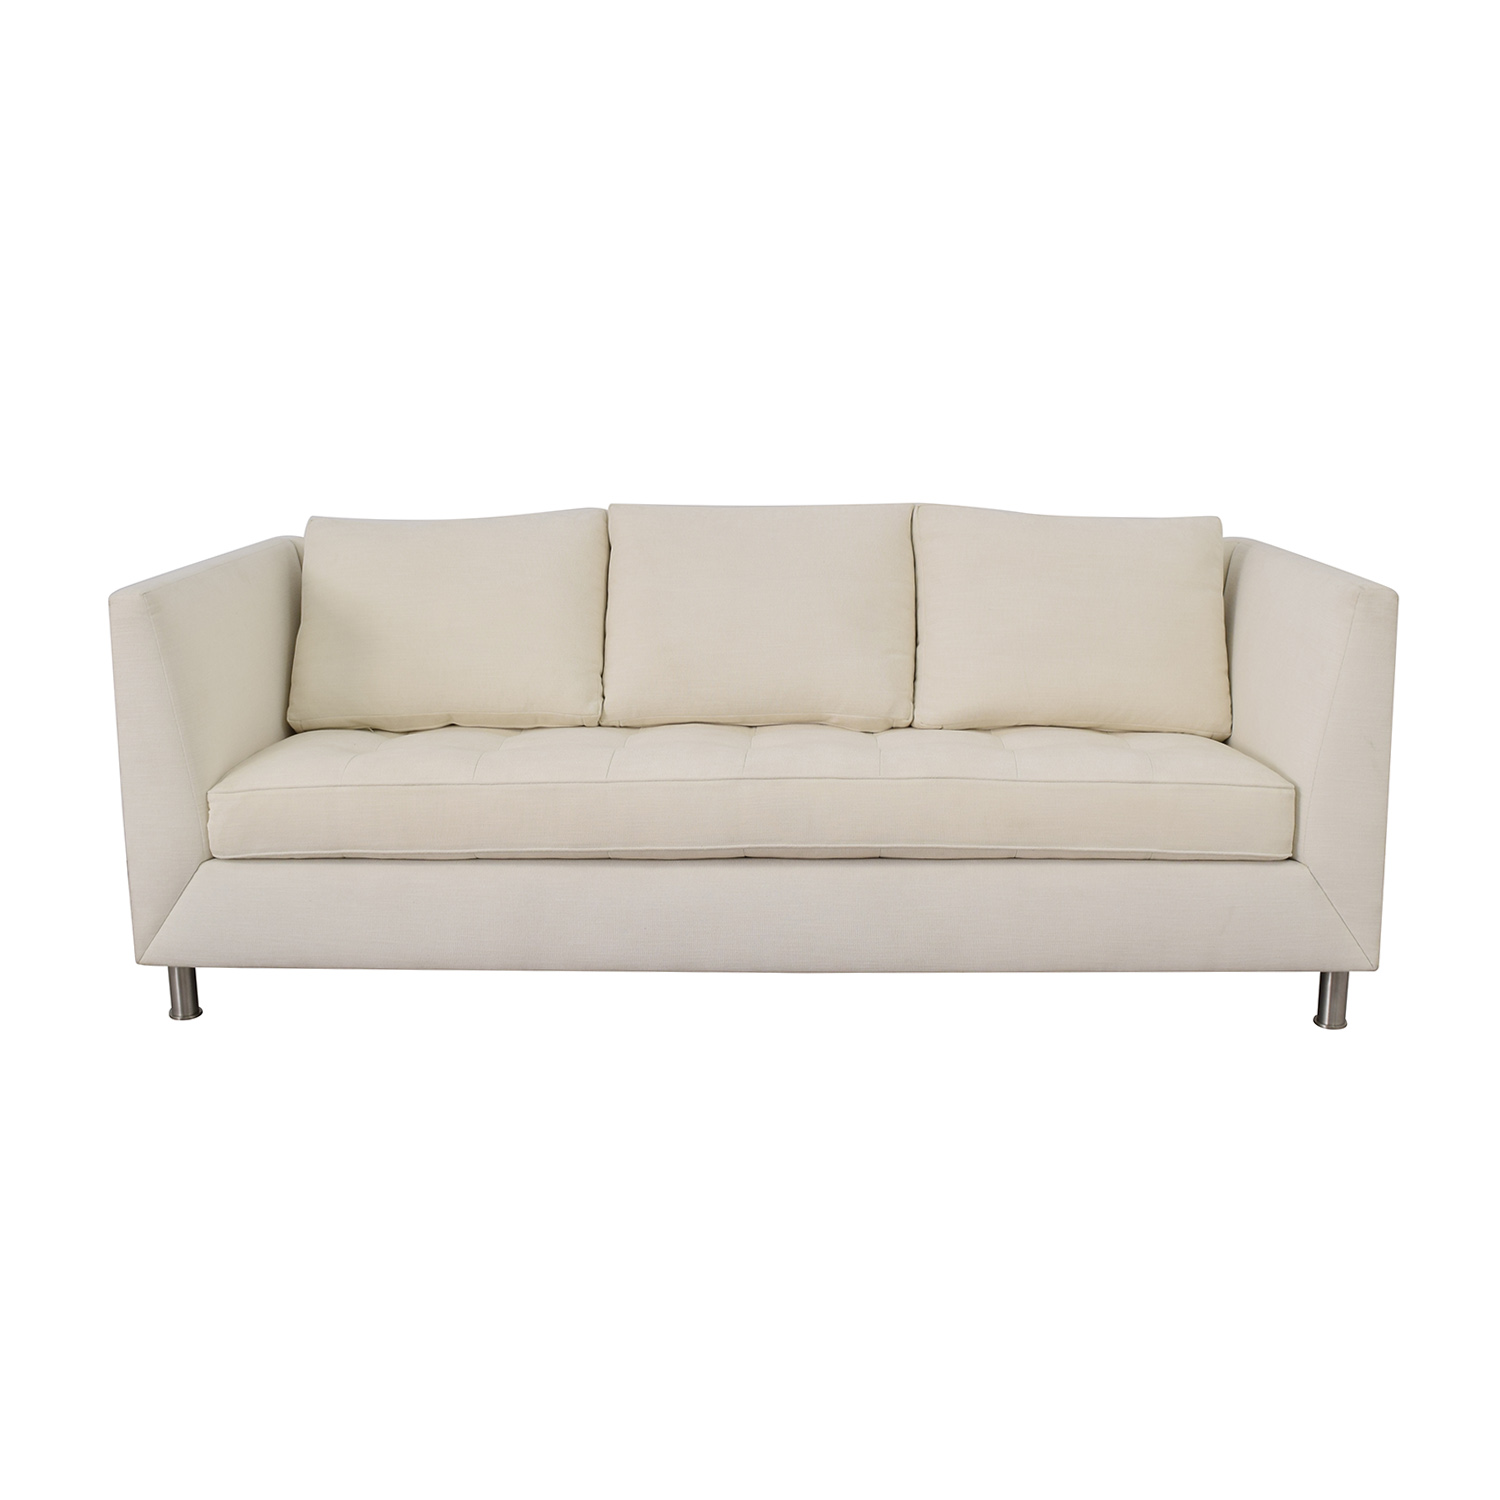 Furniture Masters Beige Sofa / Sofas